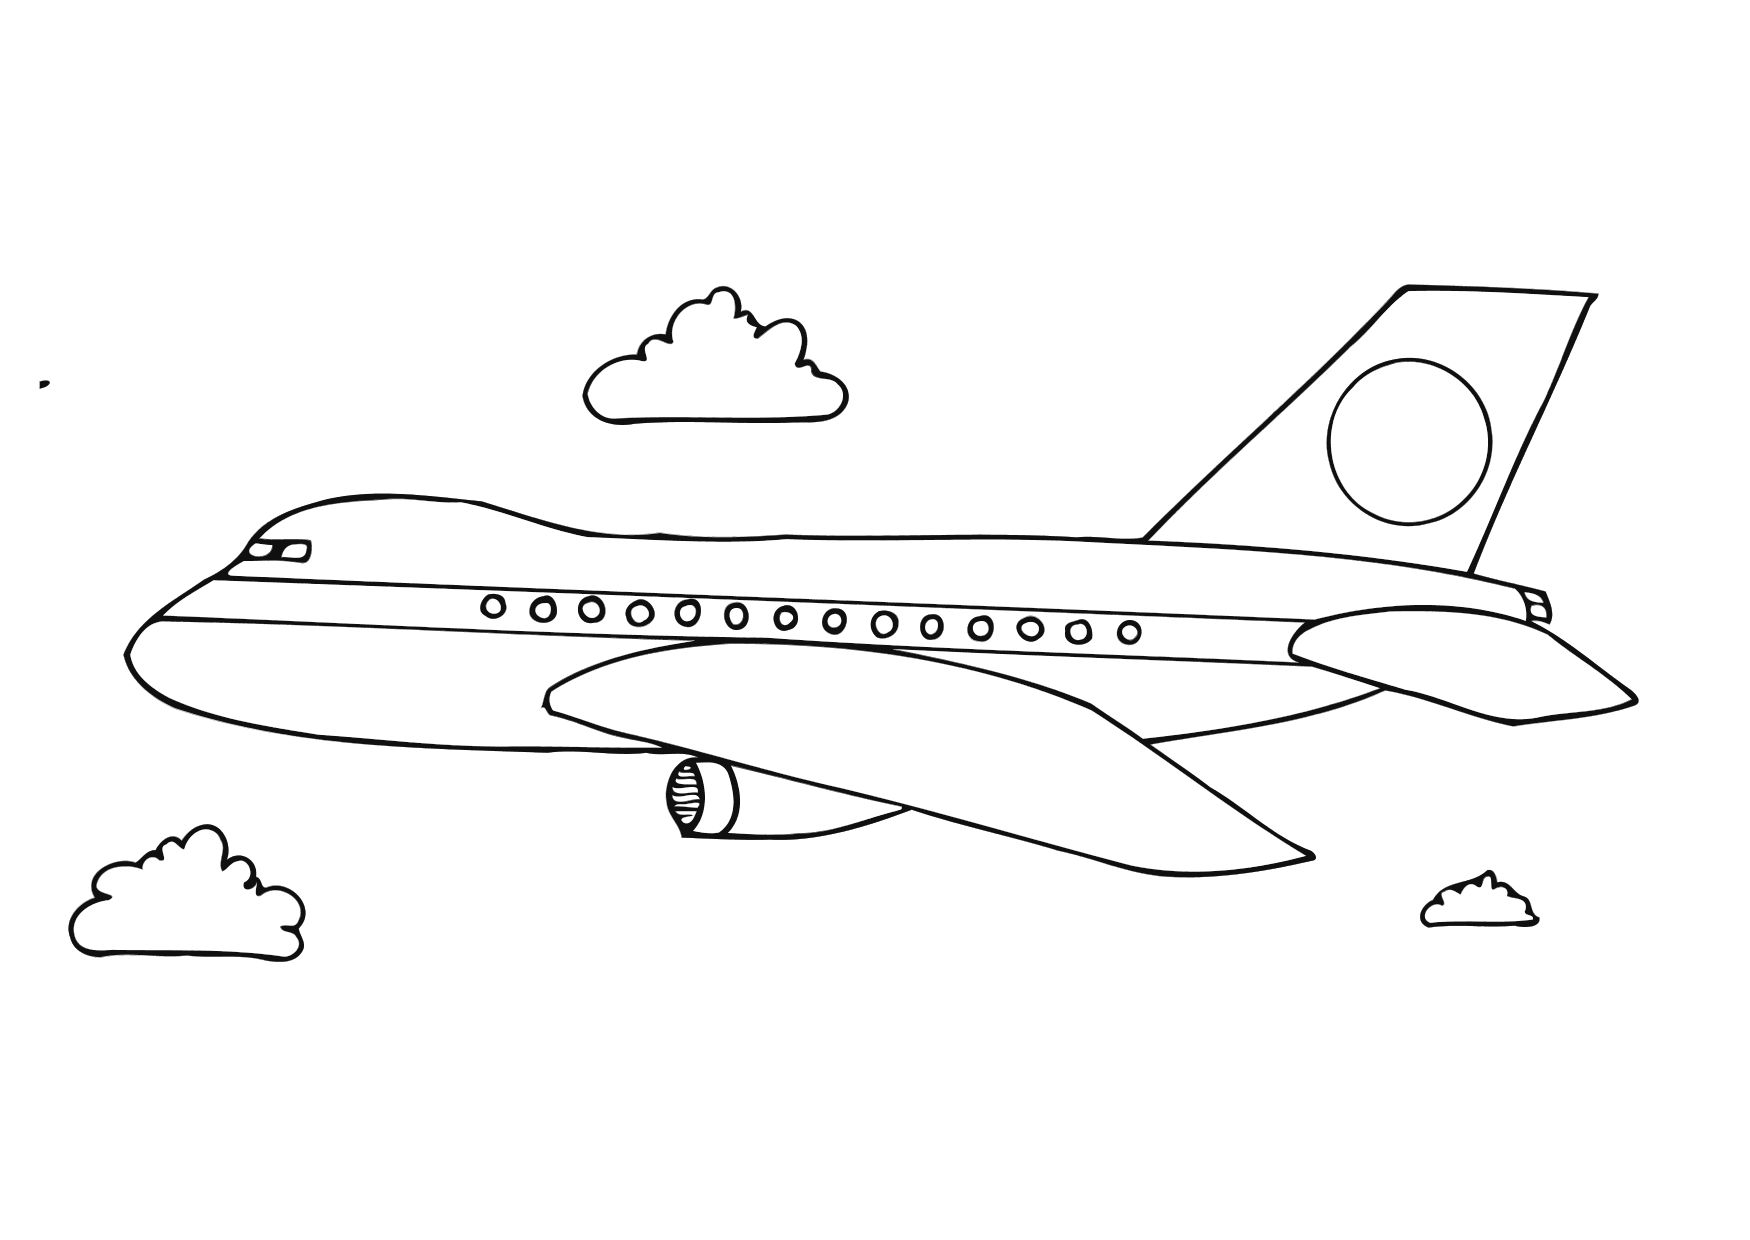 coloring airplane for kids 10 free airplane coloring pages for kids airplane kids coloring for